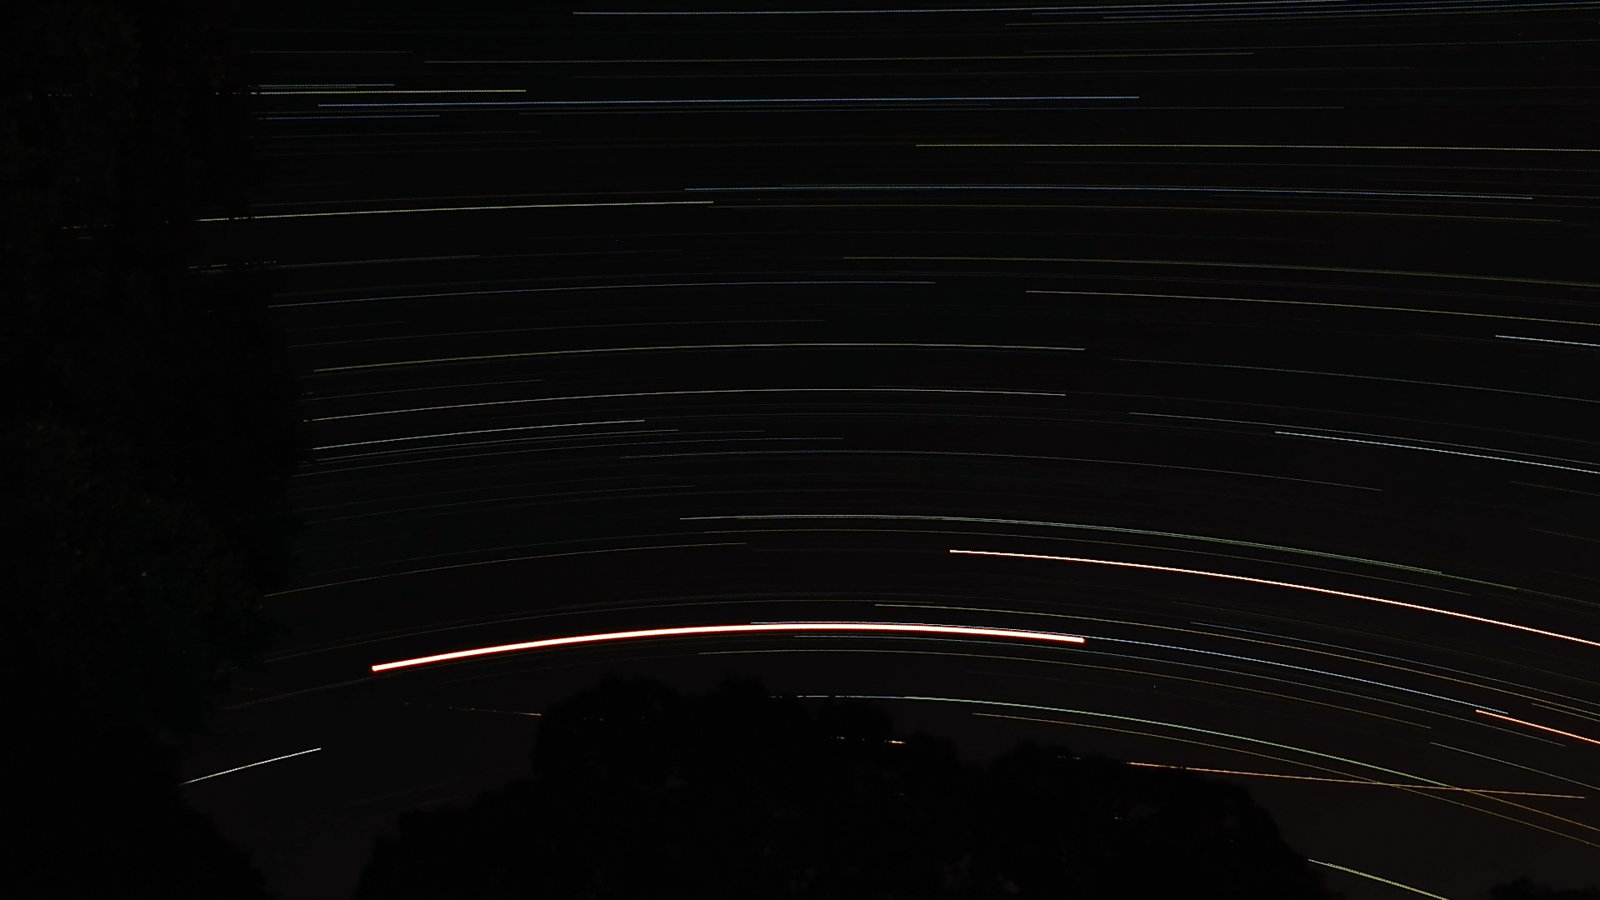 DSCN8572 Last Frame South Star Trails.jpg